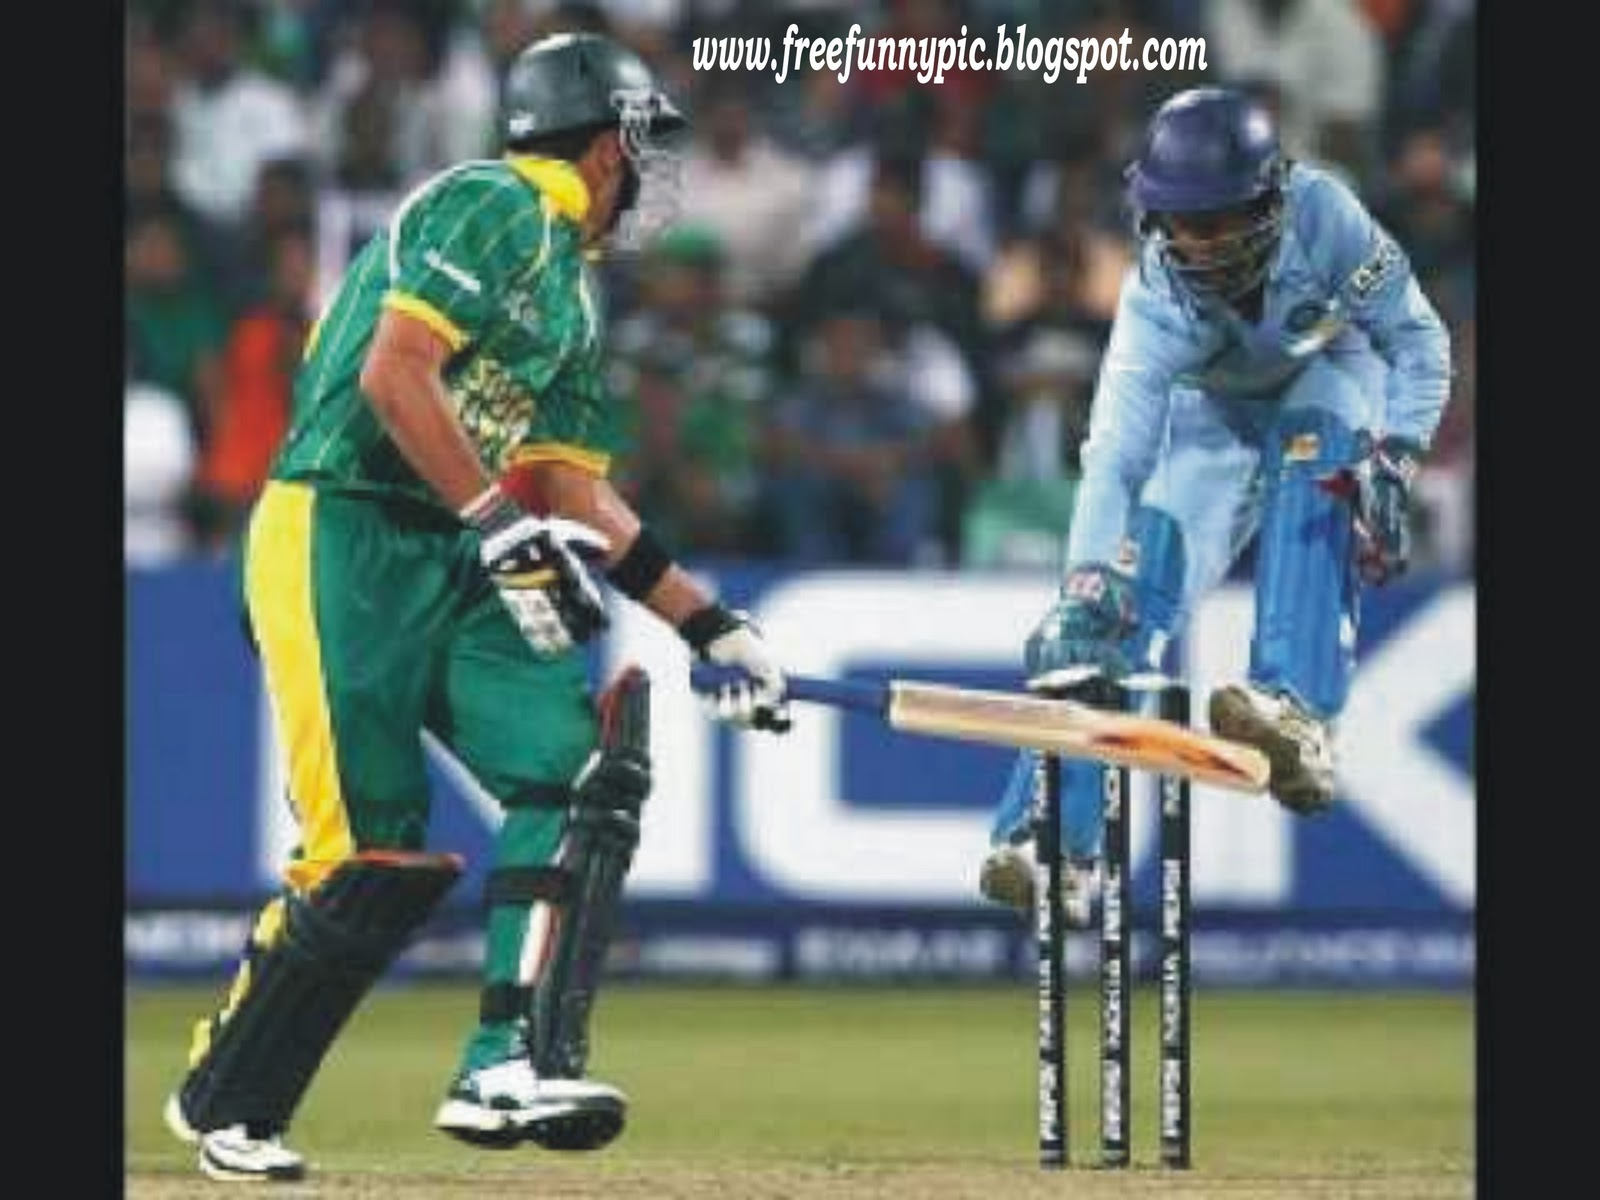 Cricket World Cup Games